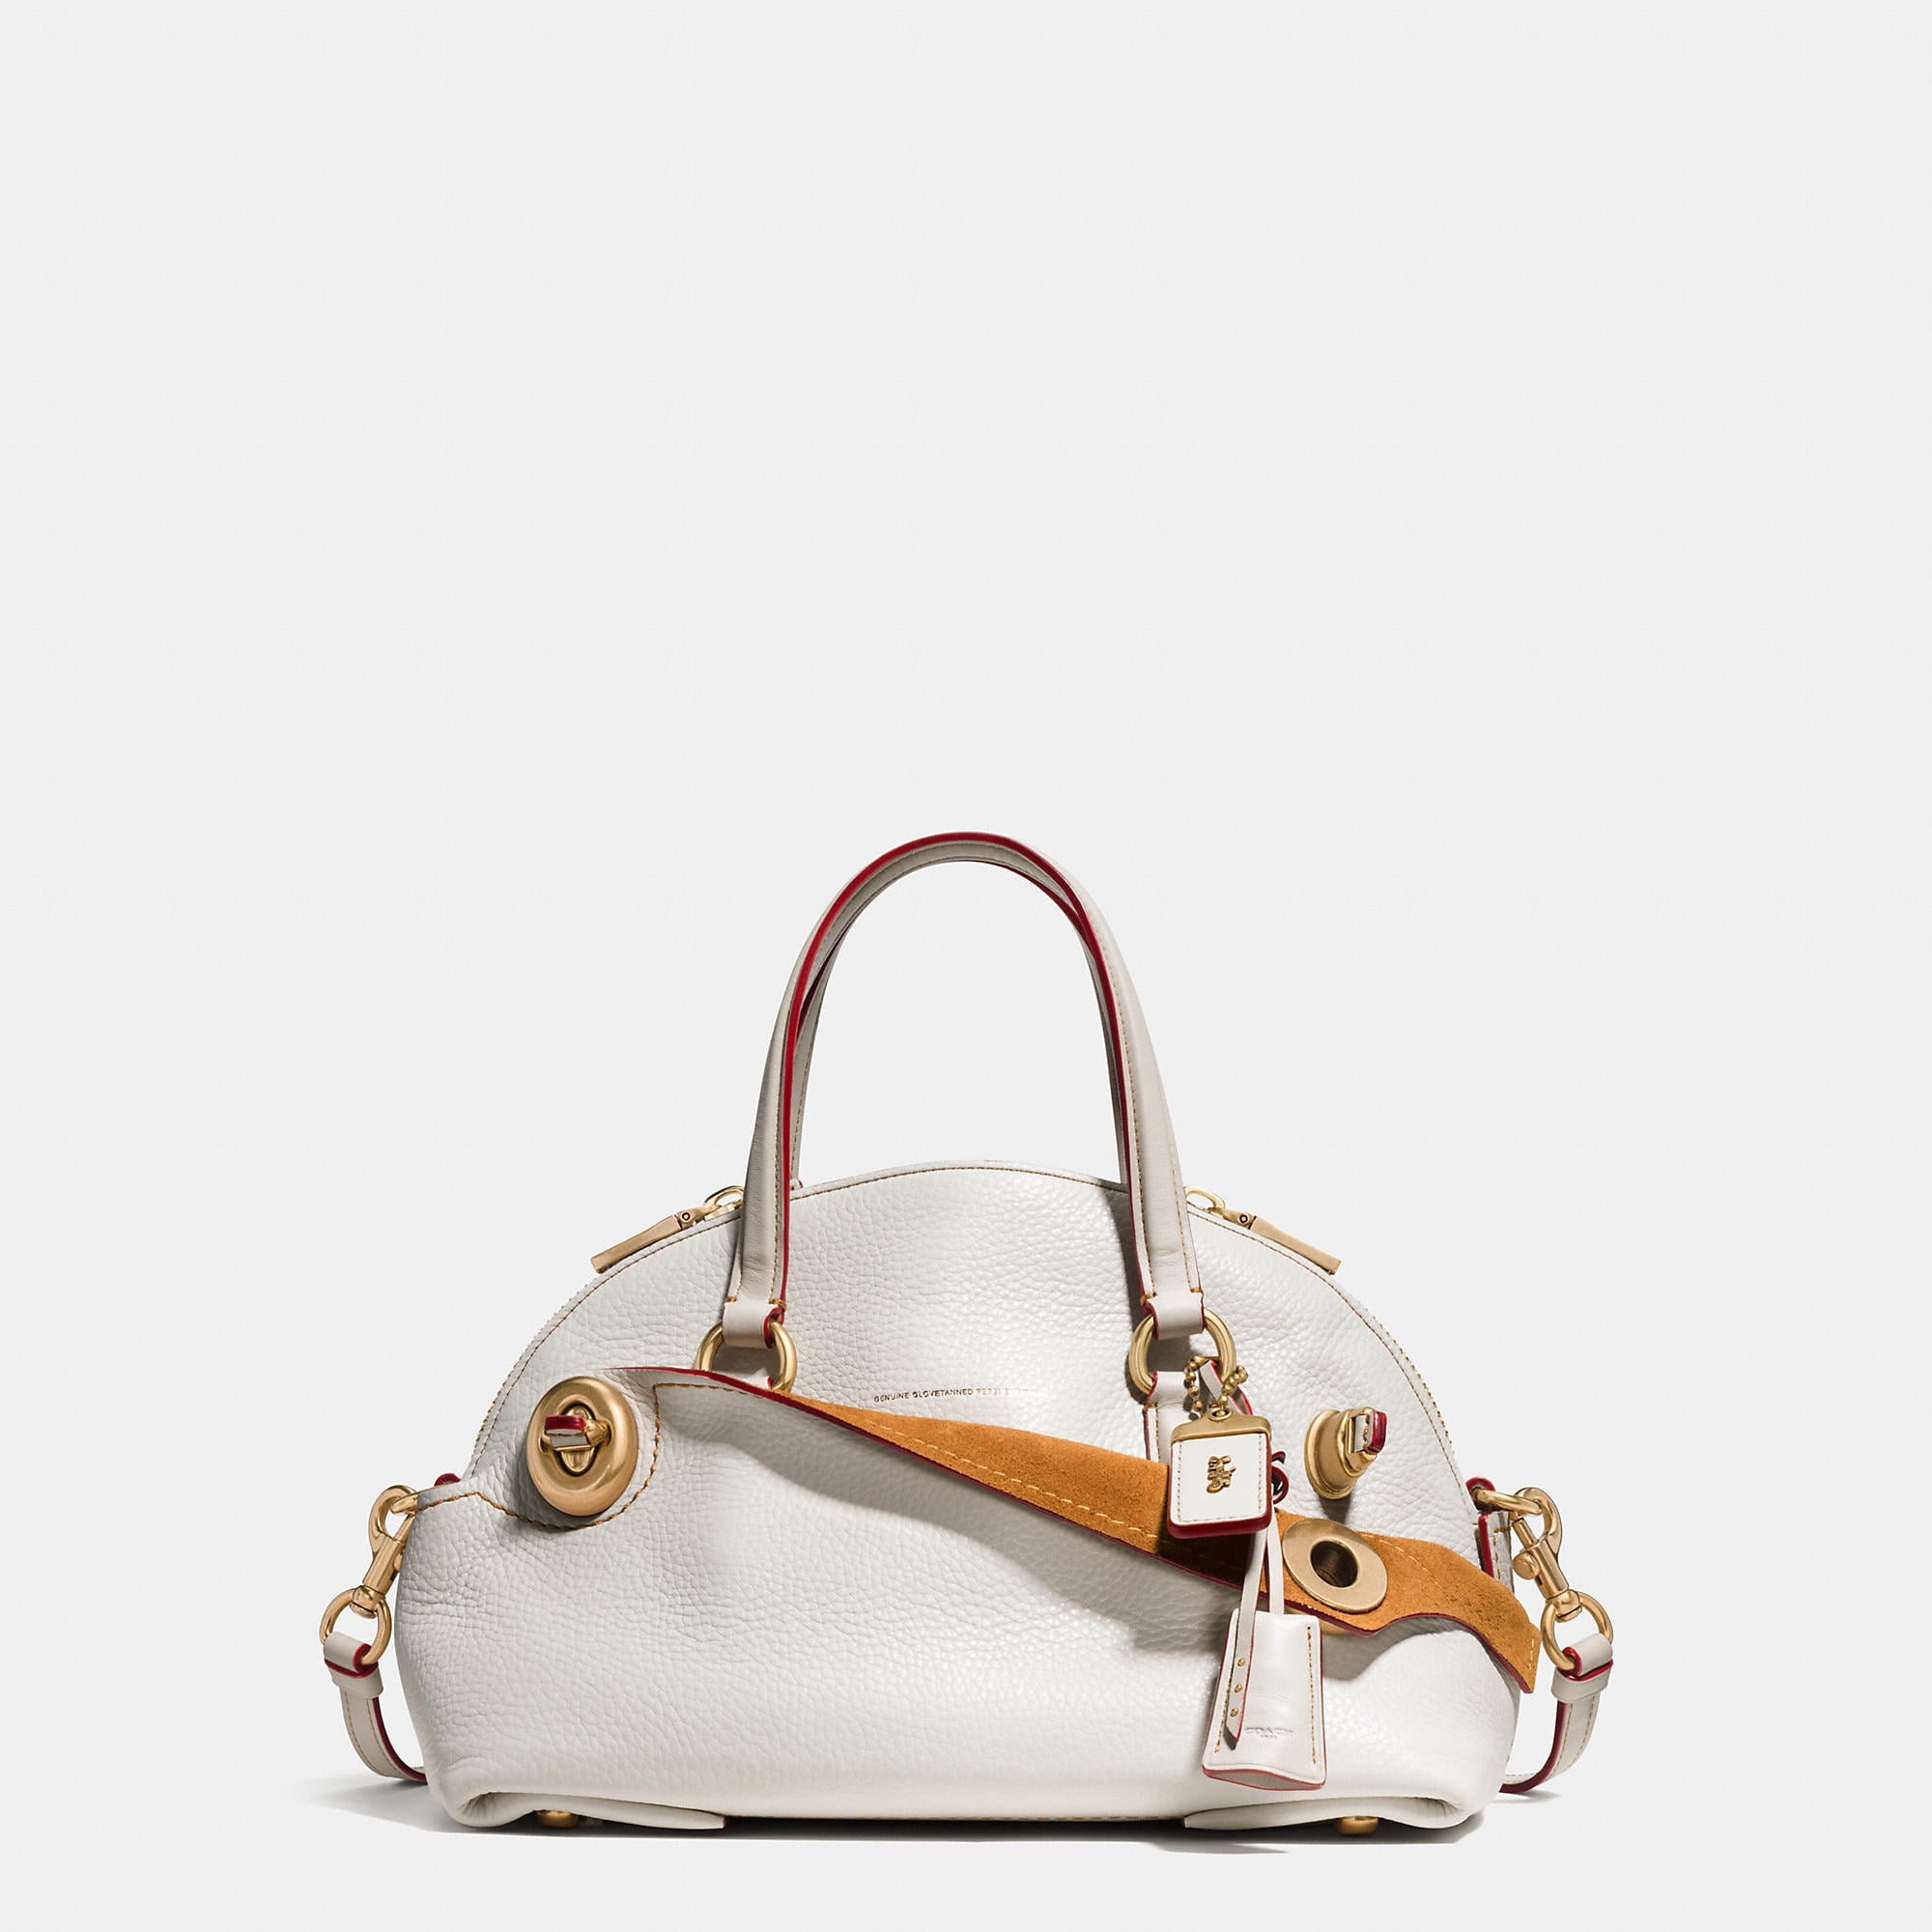 Coach Outlaw Satchel 36 In Glovetanned Pebble Leather